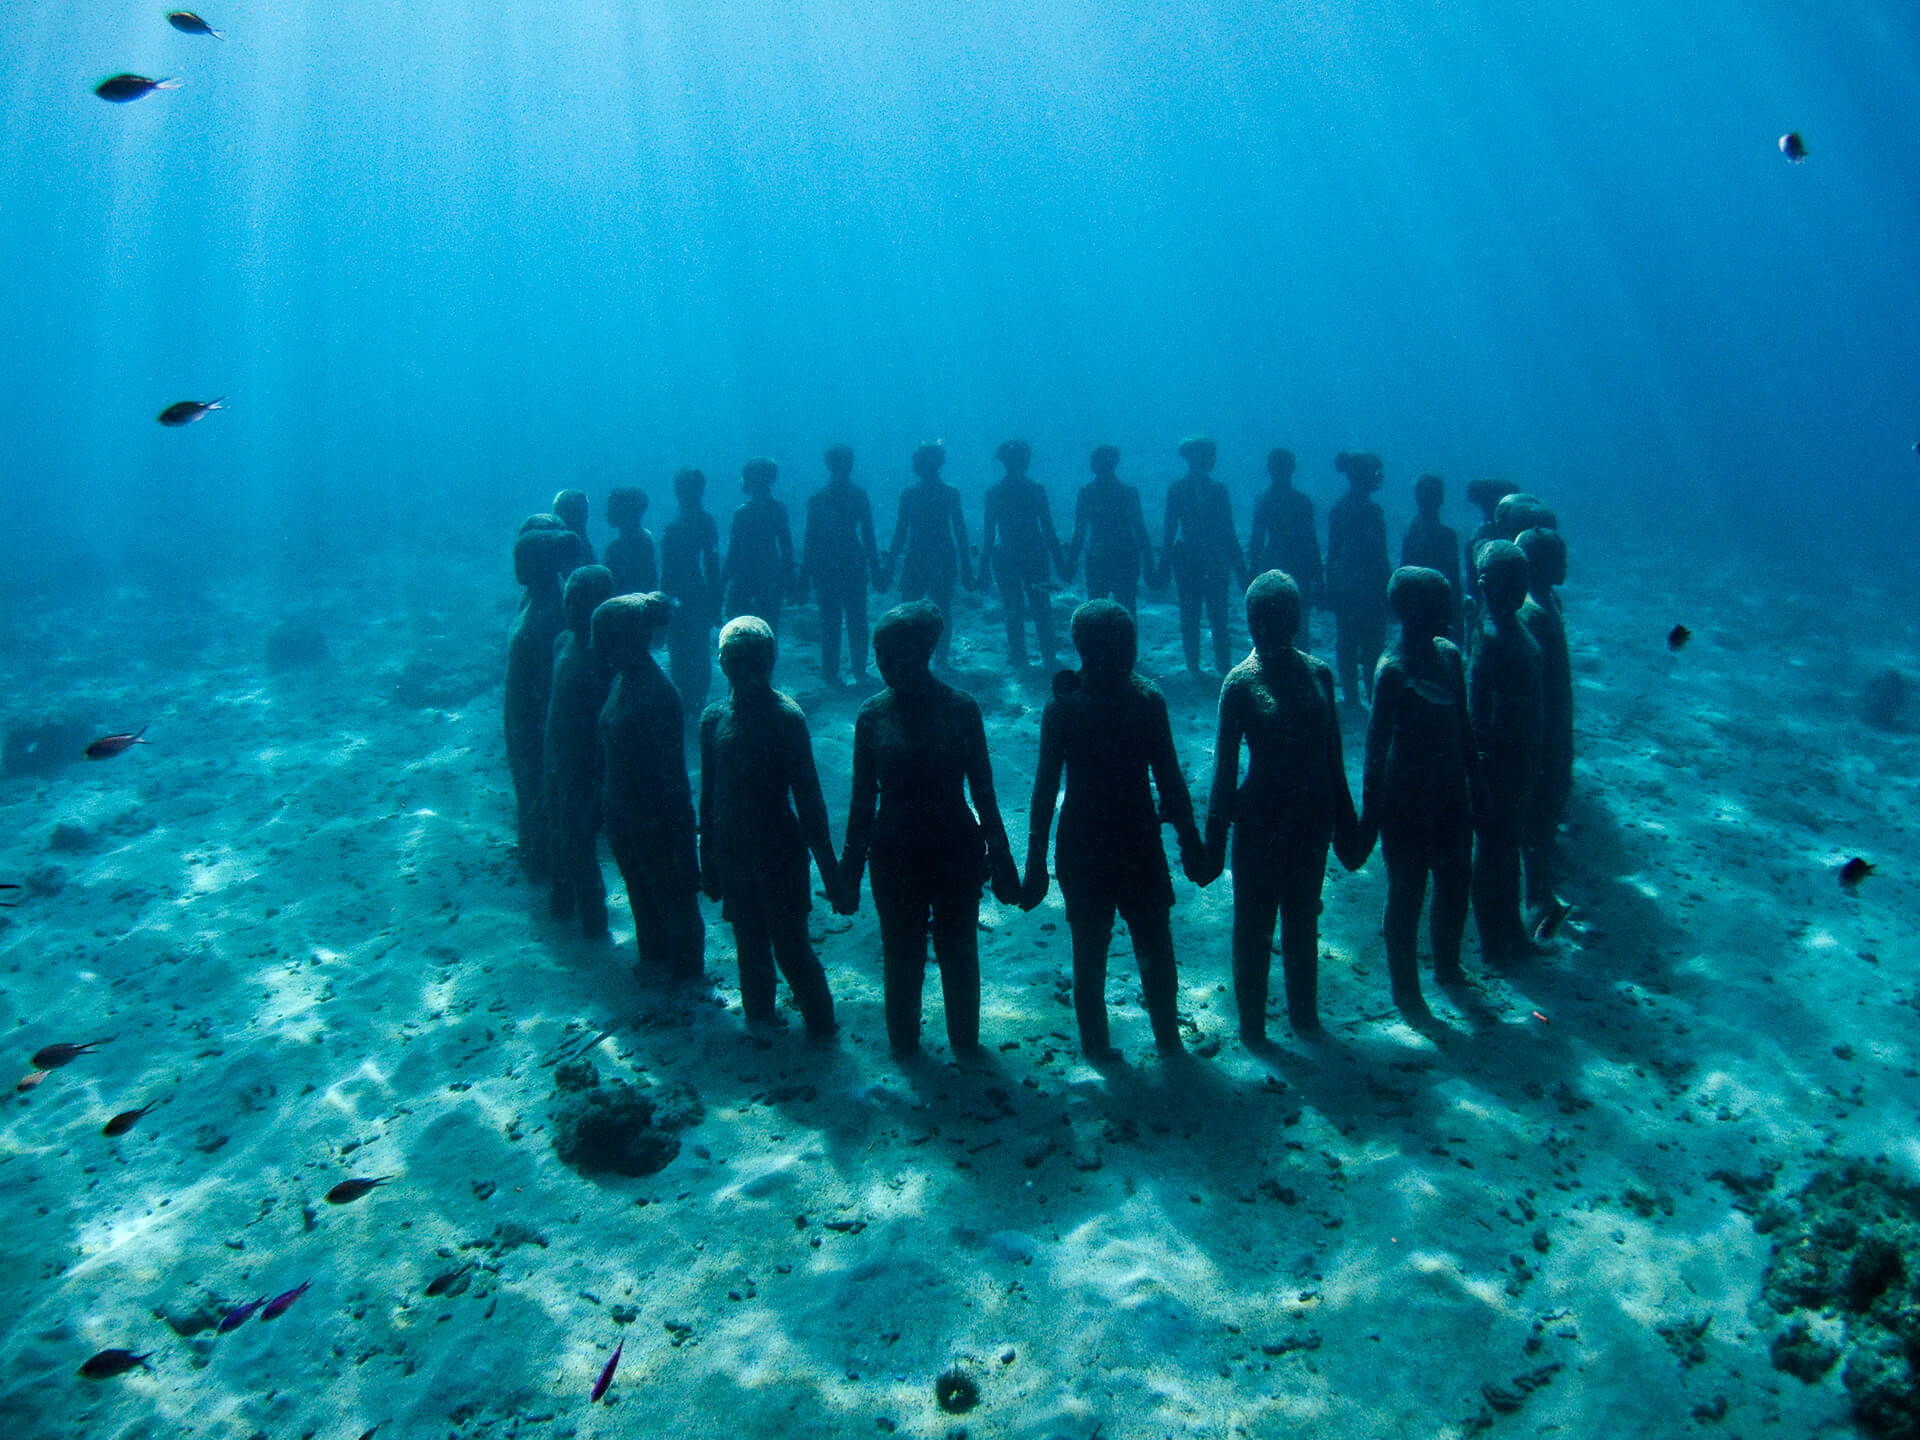 Vicissitudes by Taylor | The Rising Tide | Jason deCaires Taylor | STIRworld